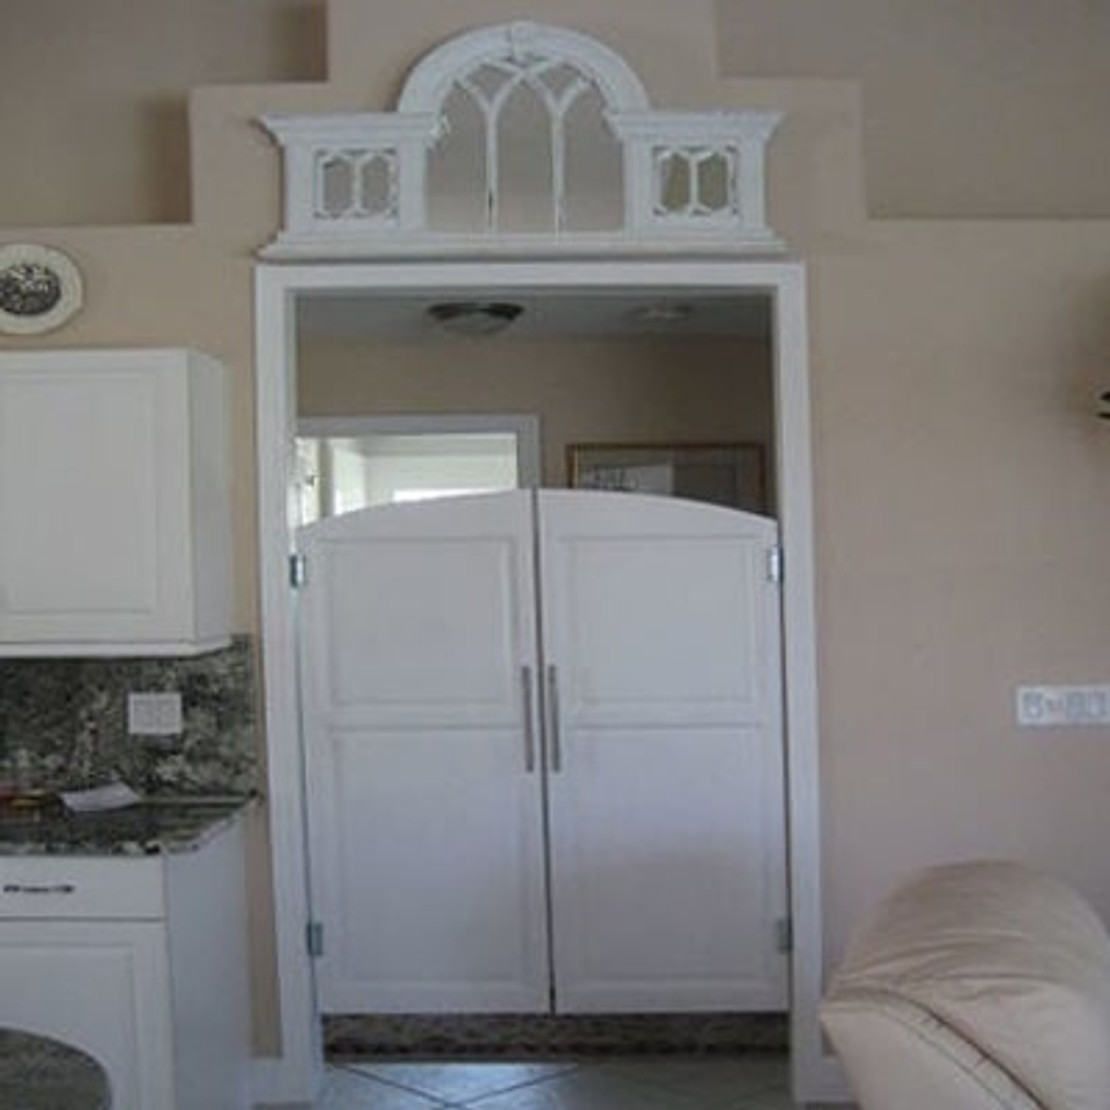 What are Saloon Doors and Cafe Doors?